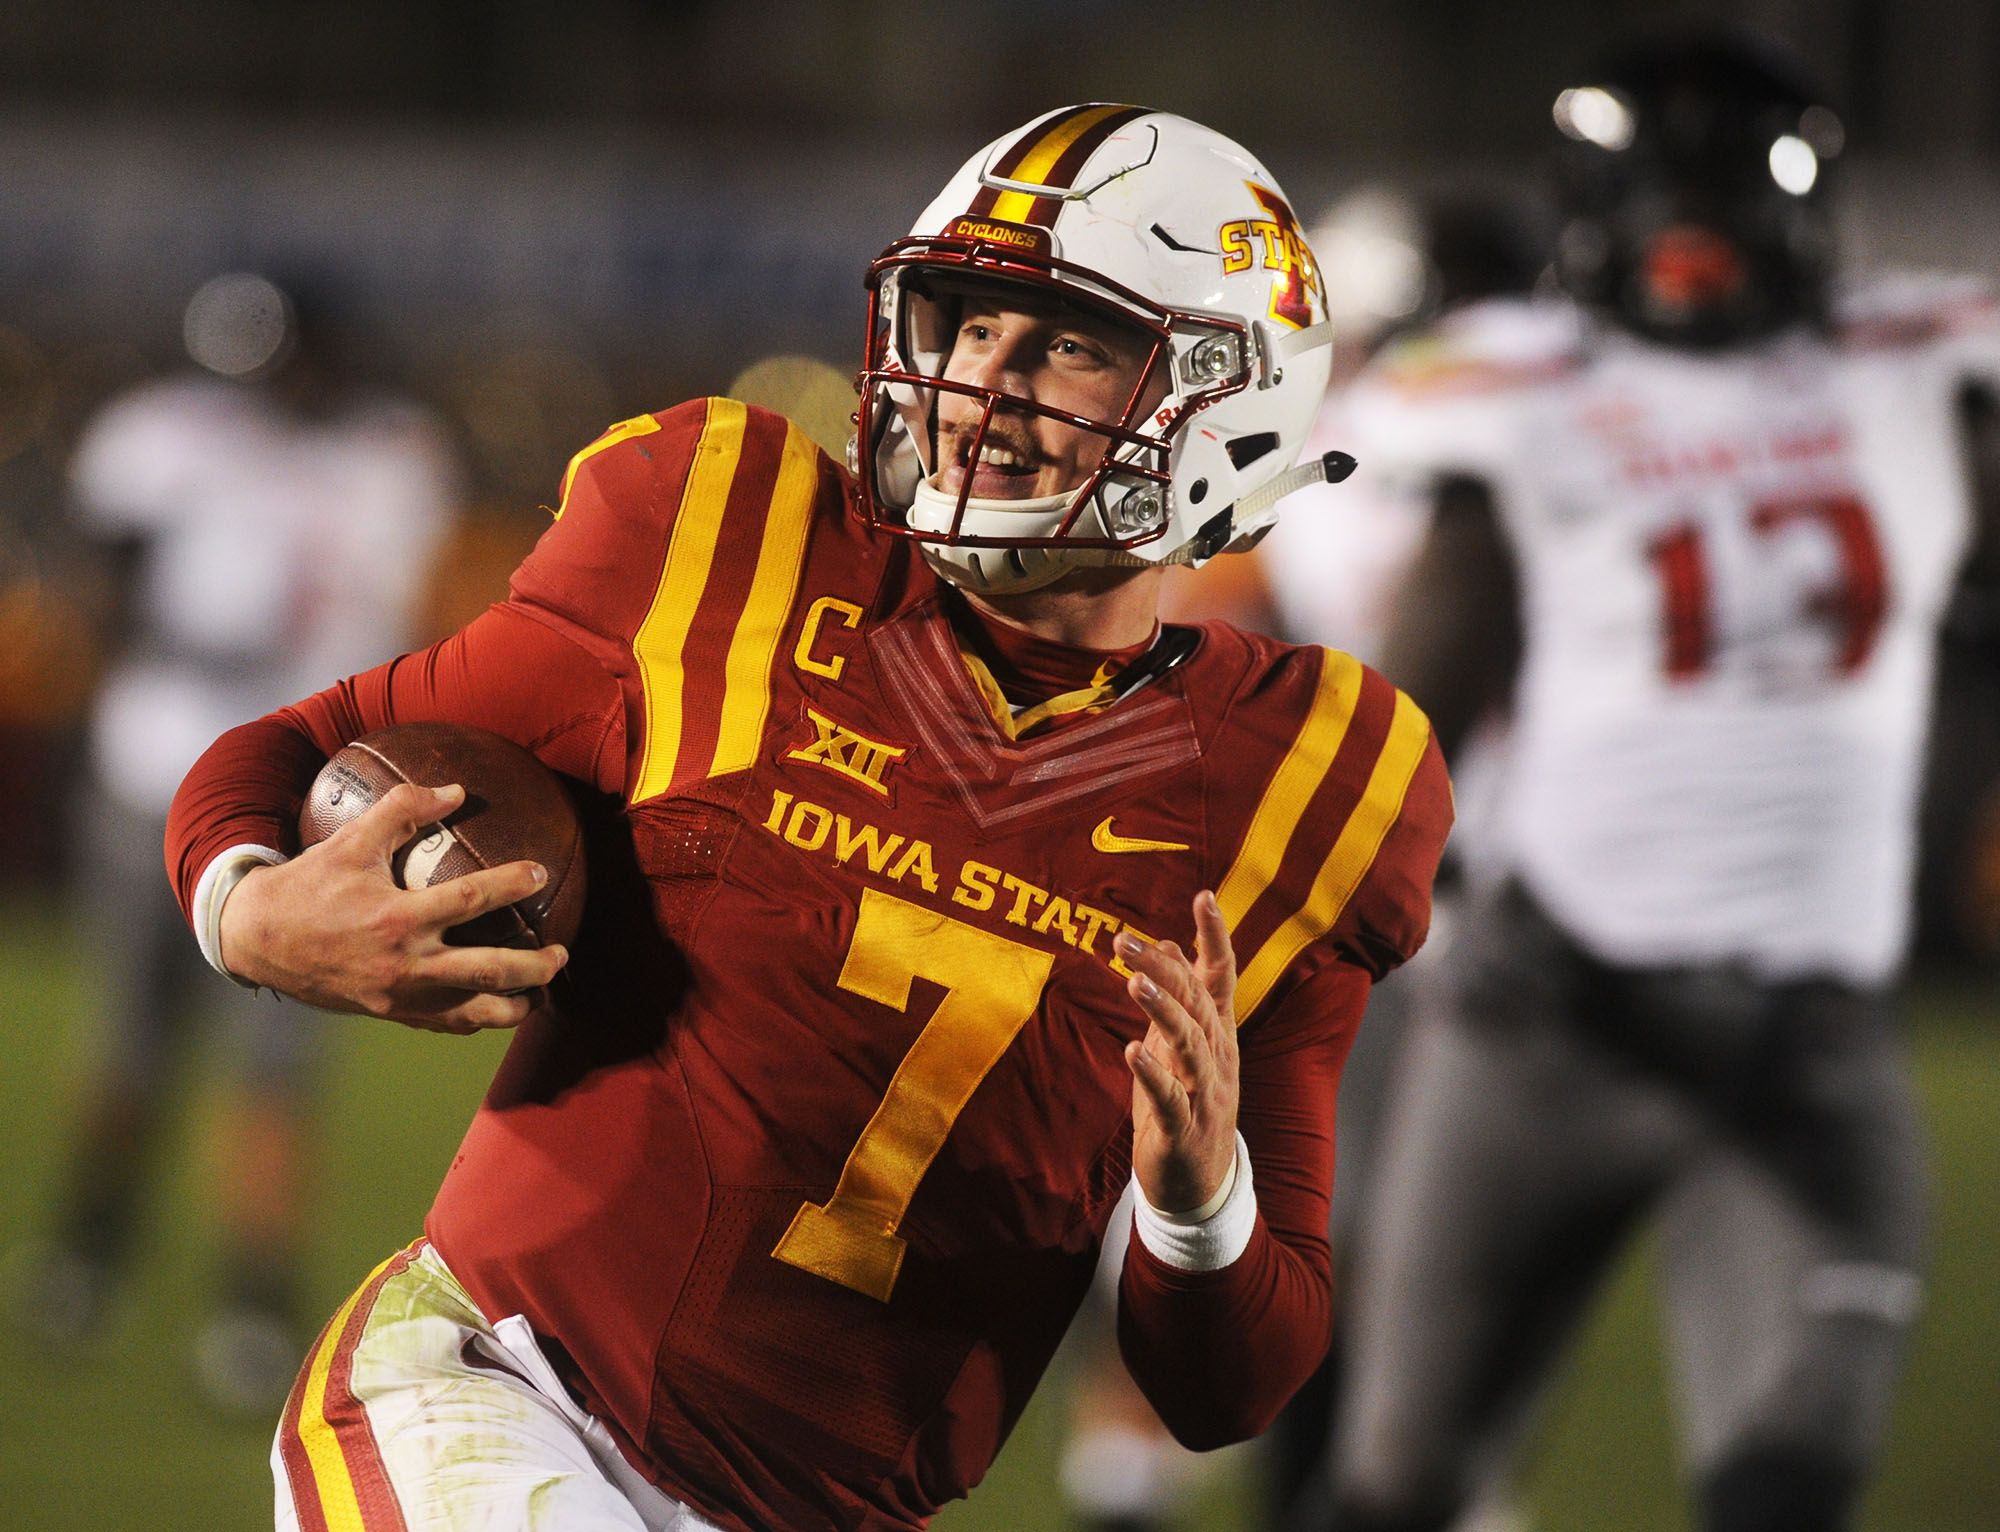 Iowa State S Joel Lanning Has Converted To Linebacker From